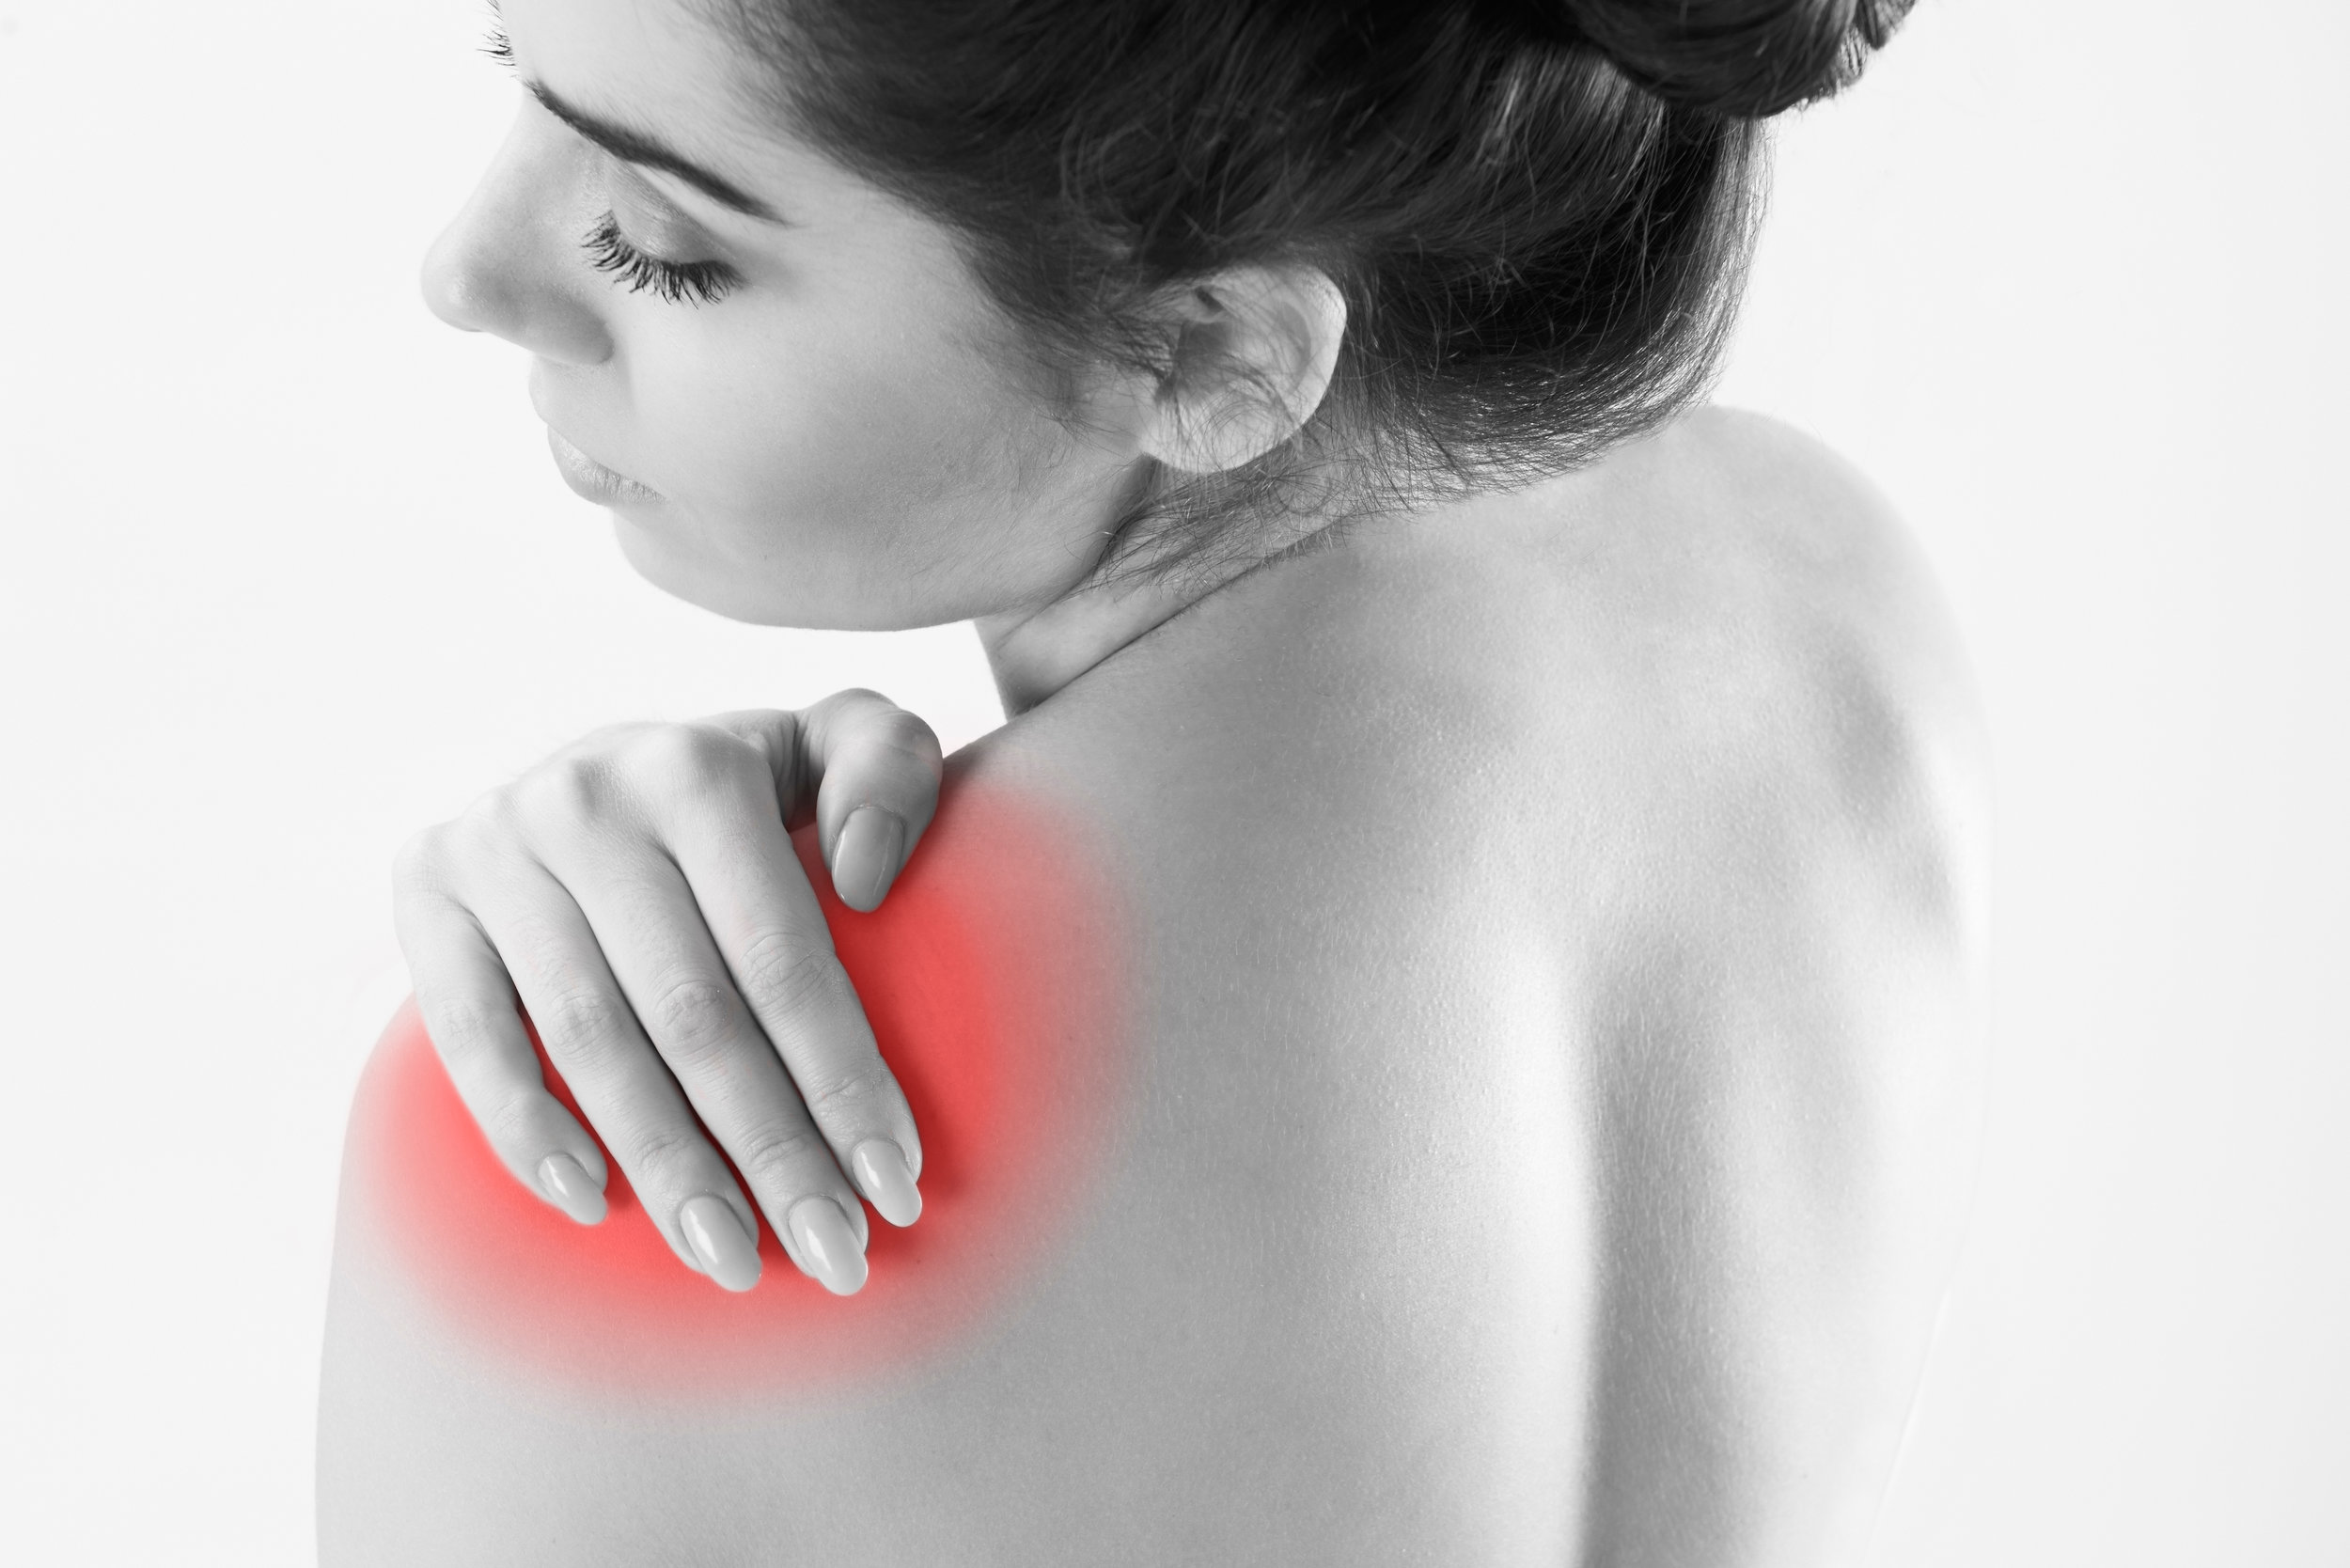 Chronic shoulder pain from injury, frozen shoulder, or rotator cuff problems can be solved with nonsurgical treatment at Beaver County Spinal Disc & Neurology Center.